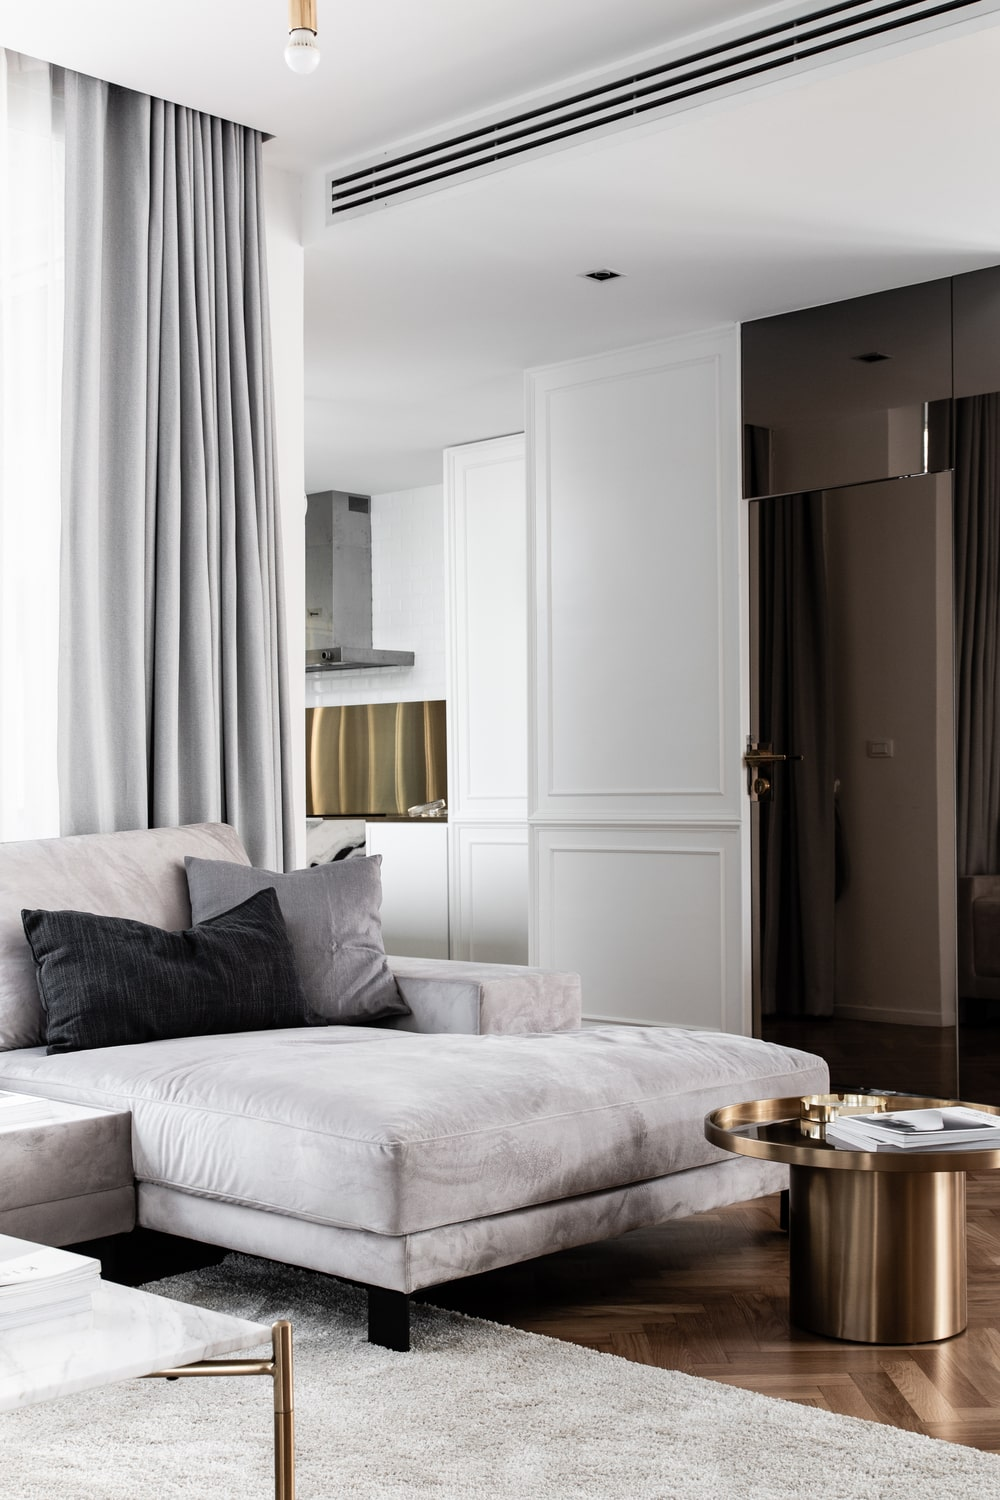 This is a large day bed sofa on the far end of the family room that is also paired with a small metallic round end table.